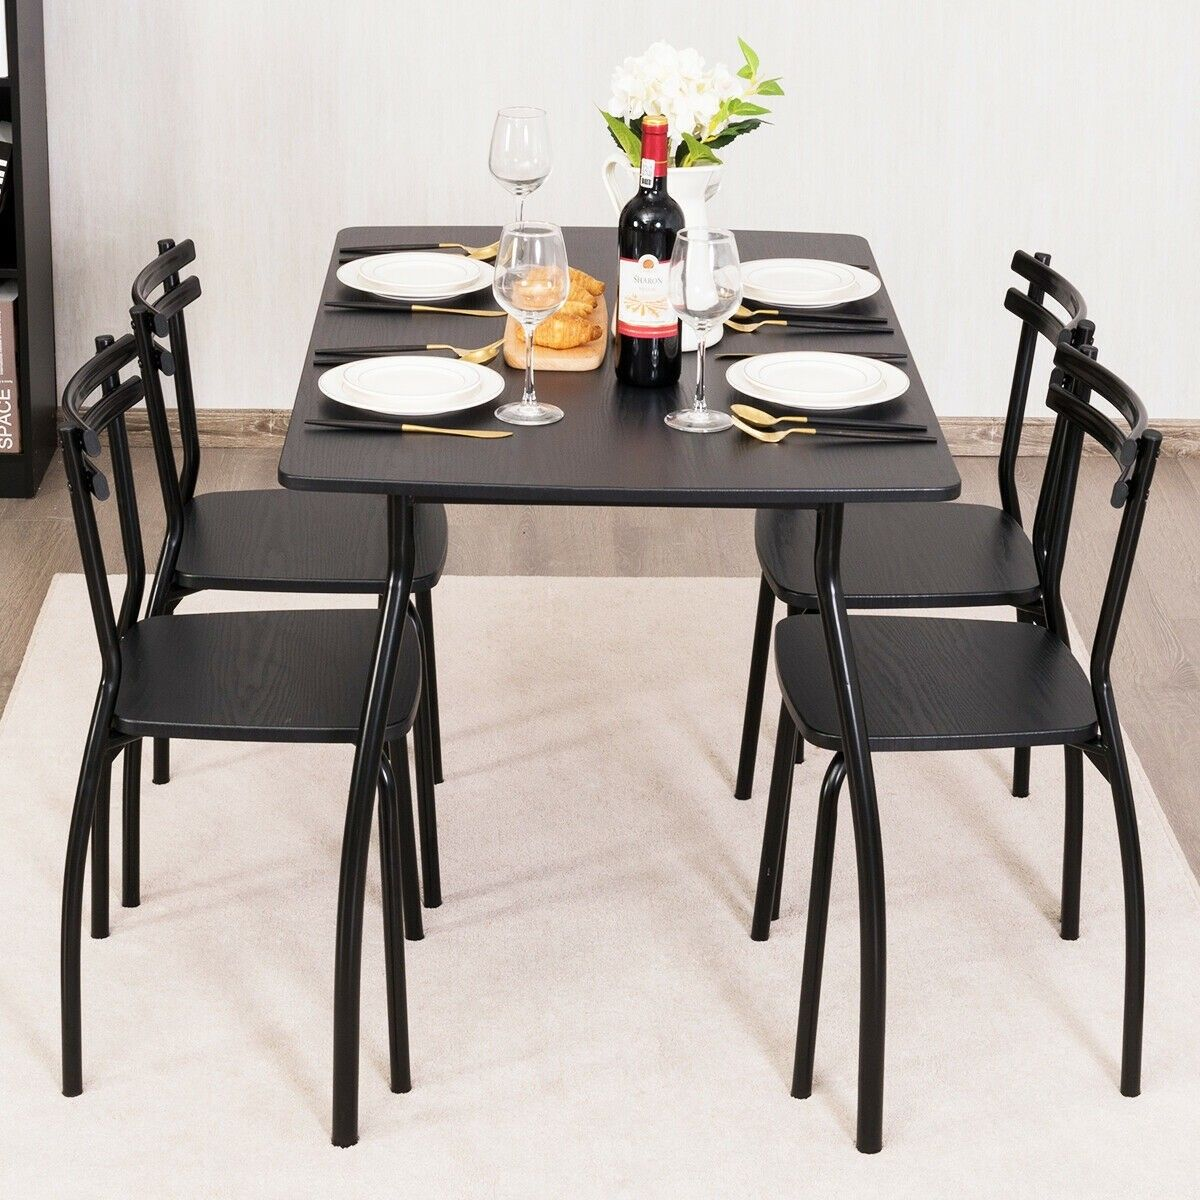 5 Pcs Dining Table Set With 4 Chairs Black Dining Table